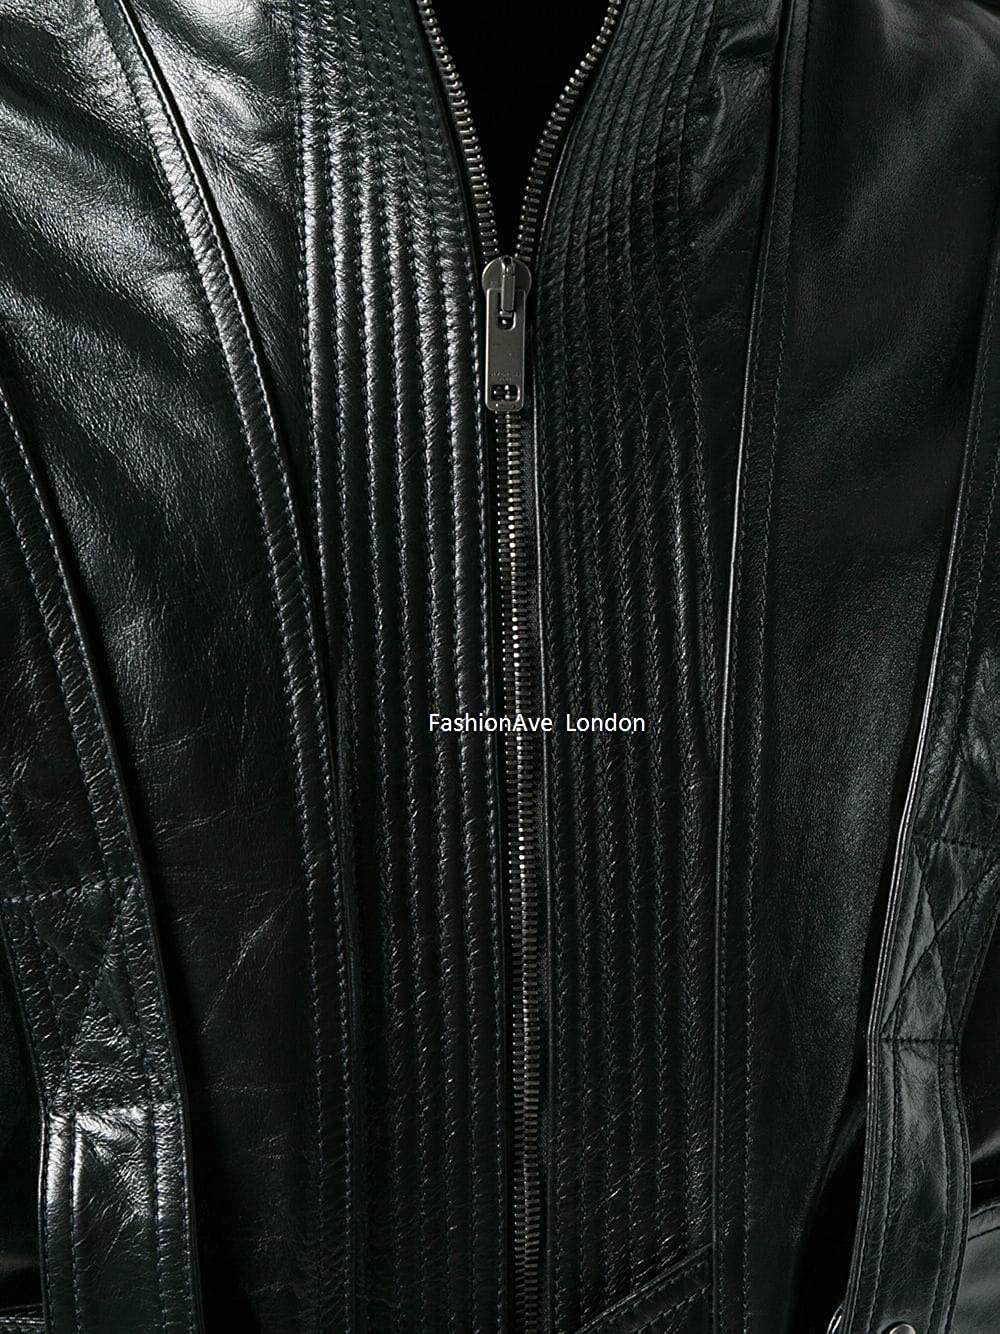 FashionAve London Mens Black 100/% Real Leather Denim Motorcycle//Rider Jacket